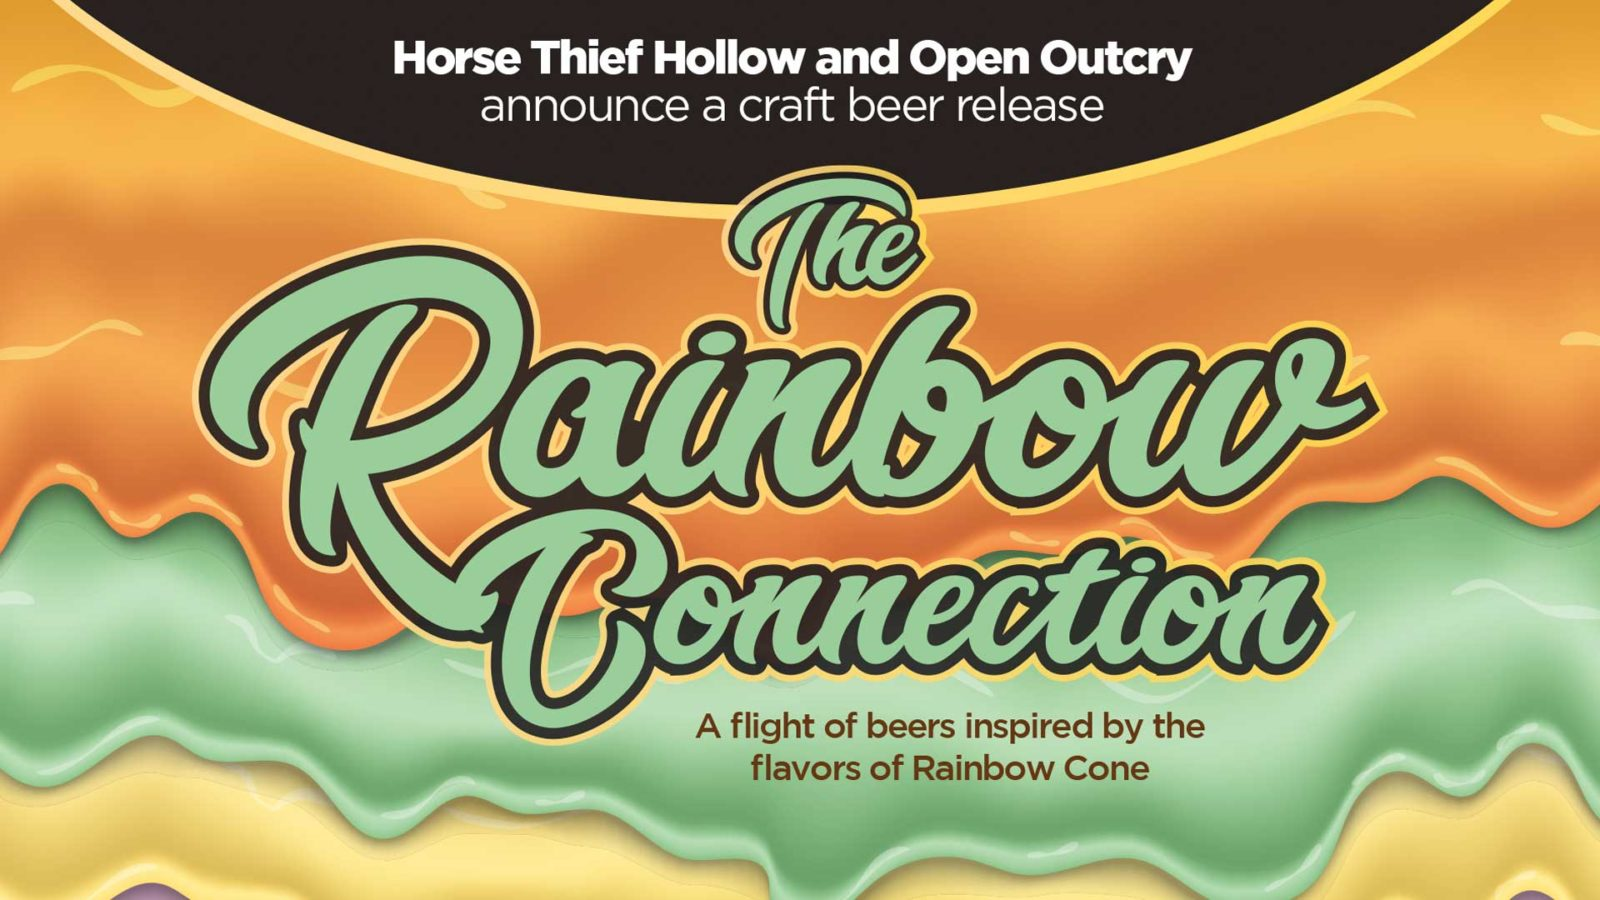 illustration for Rainbow Cone craft beer flight